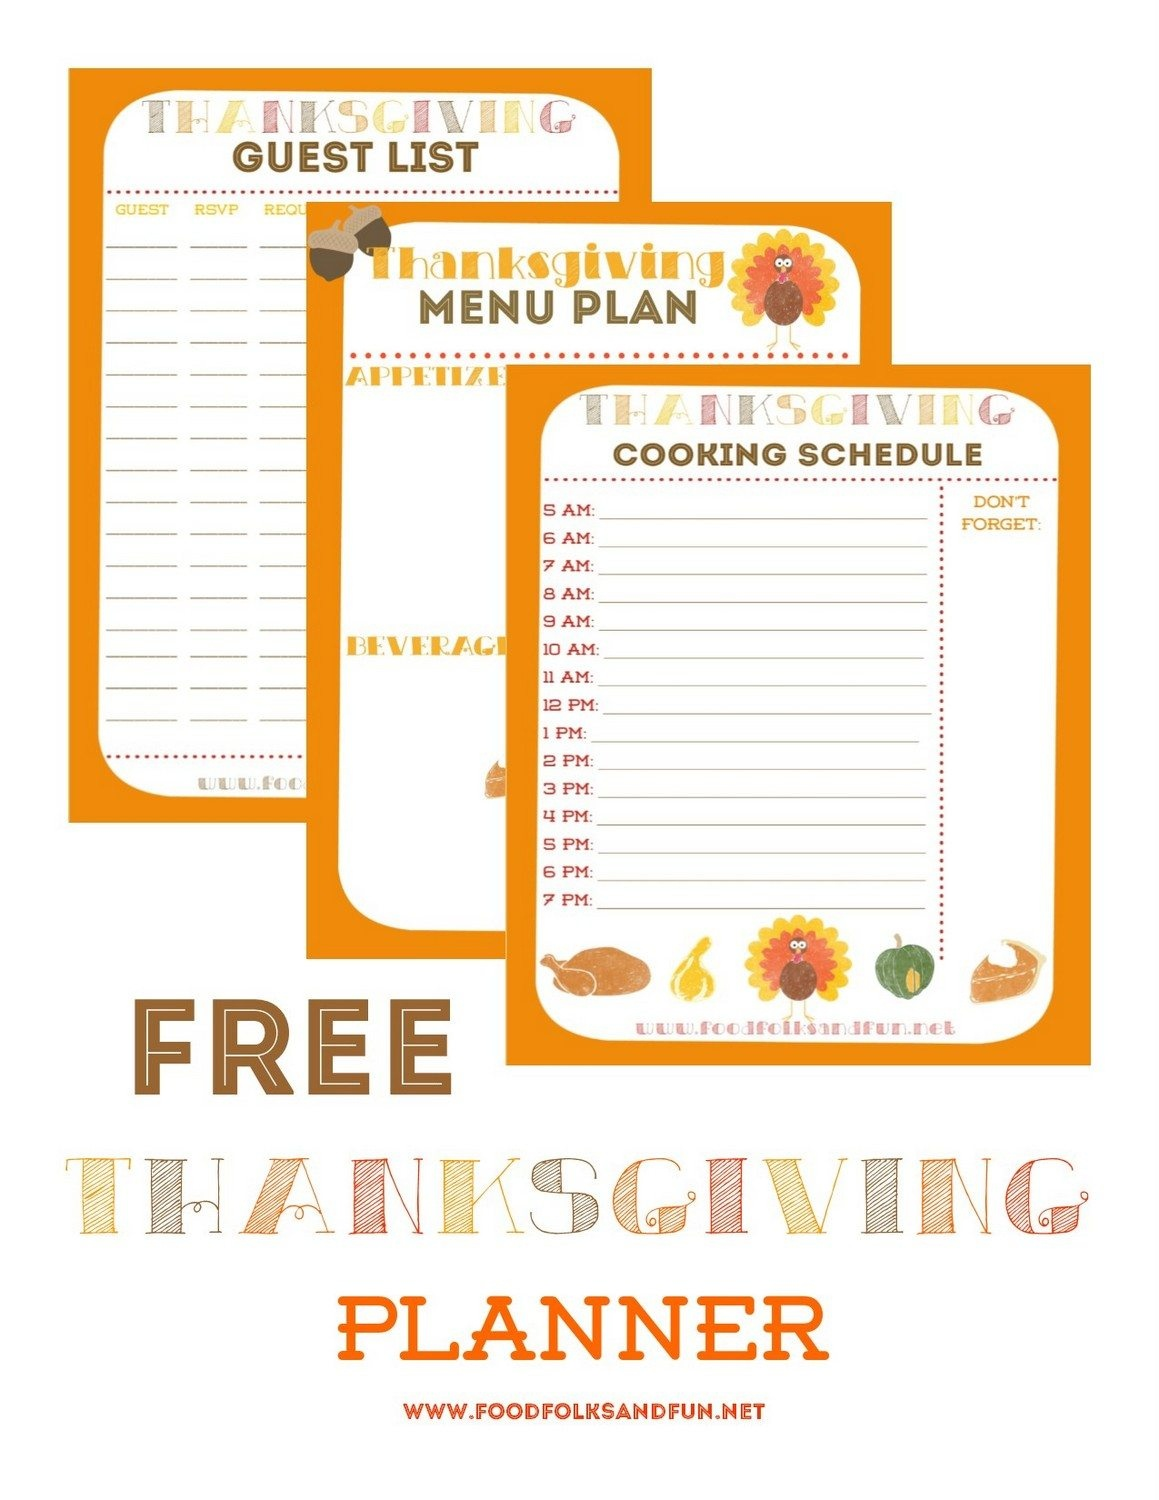 Thanksgiving Planner - 5 Free Printables! • Food, Folks And Fun - Free Printable For Thanksgiving